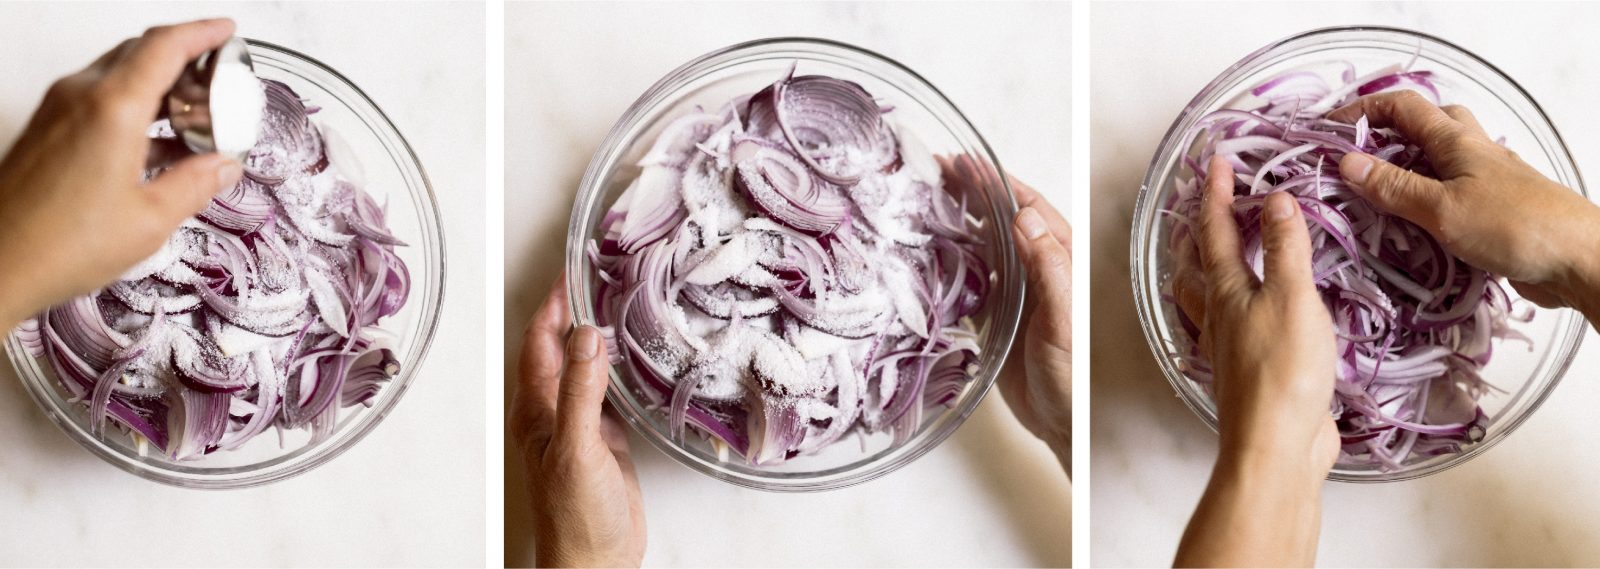 How to Tame the Flavor of Raw Onions